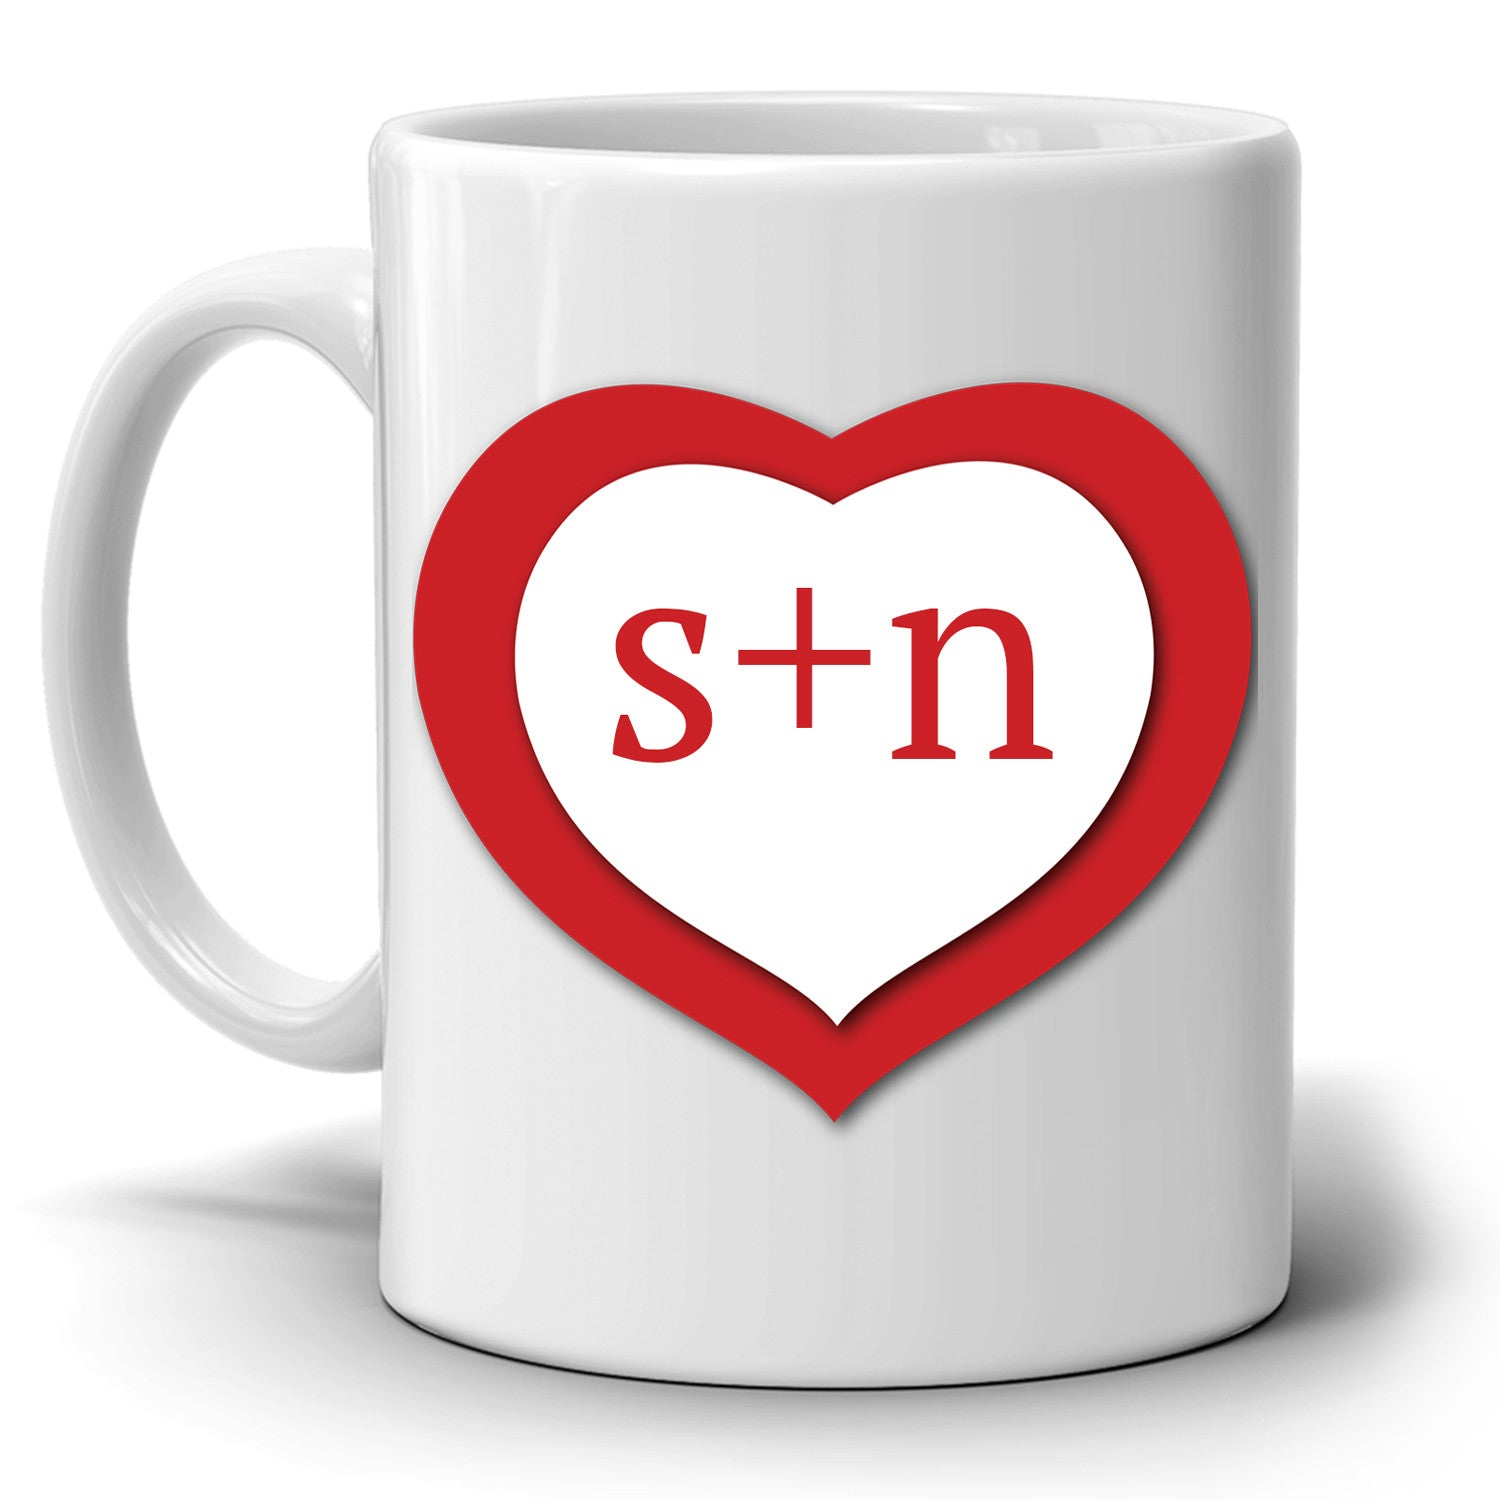 Romantic Wedding Gifts: Personalized! Romantic Couples Love Coffee Mug, Perfect